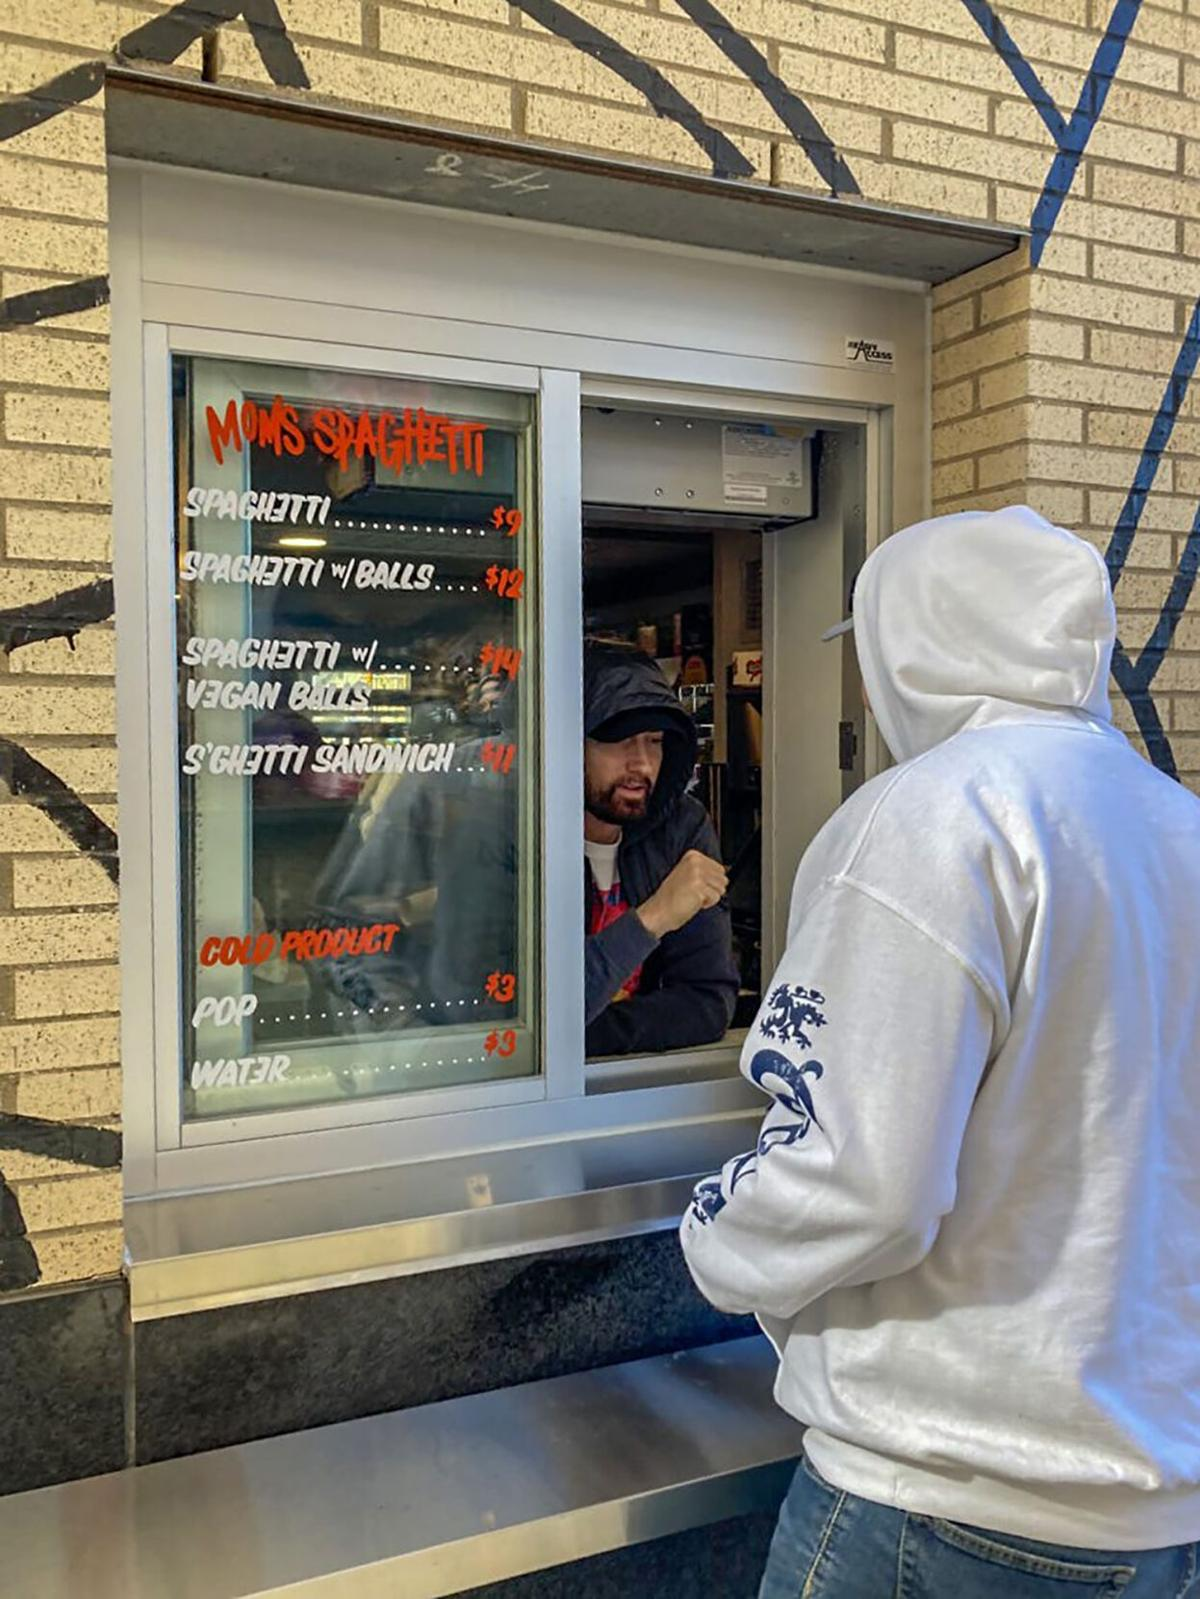 Eminem greets a patron at the window of Mom's Spaghetti on Wednesday, Sept. 29, 2021, in Detroit.